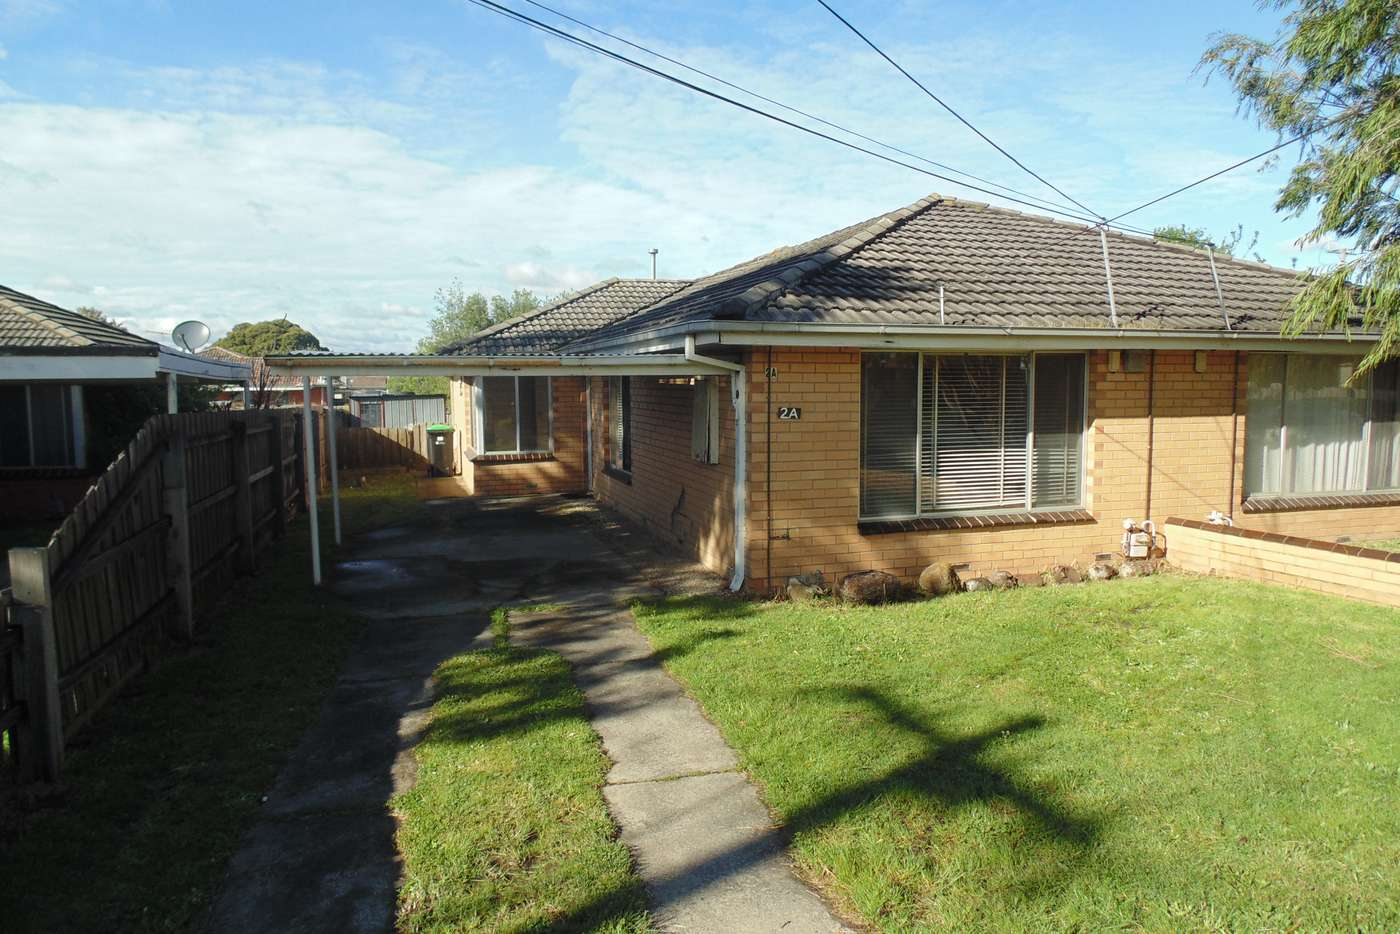 Main view of Homely unit listing, 2A Third Avenue, Dandenong North VIC 3175